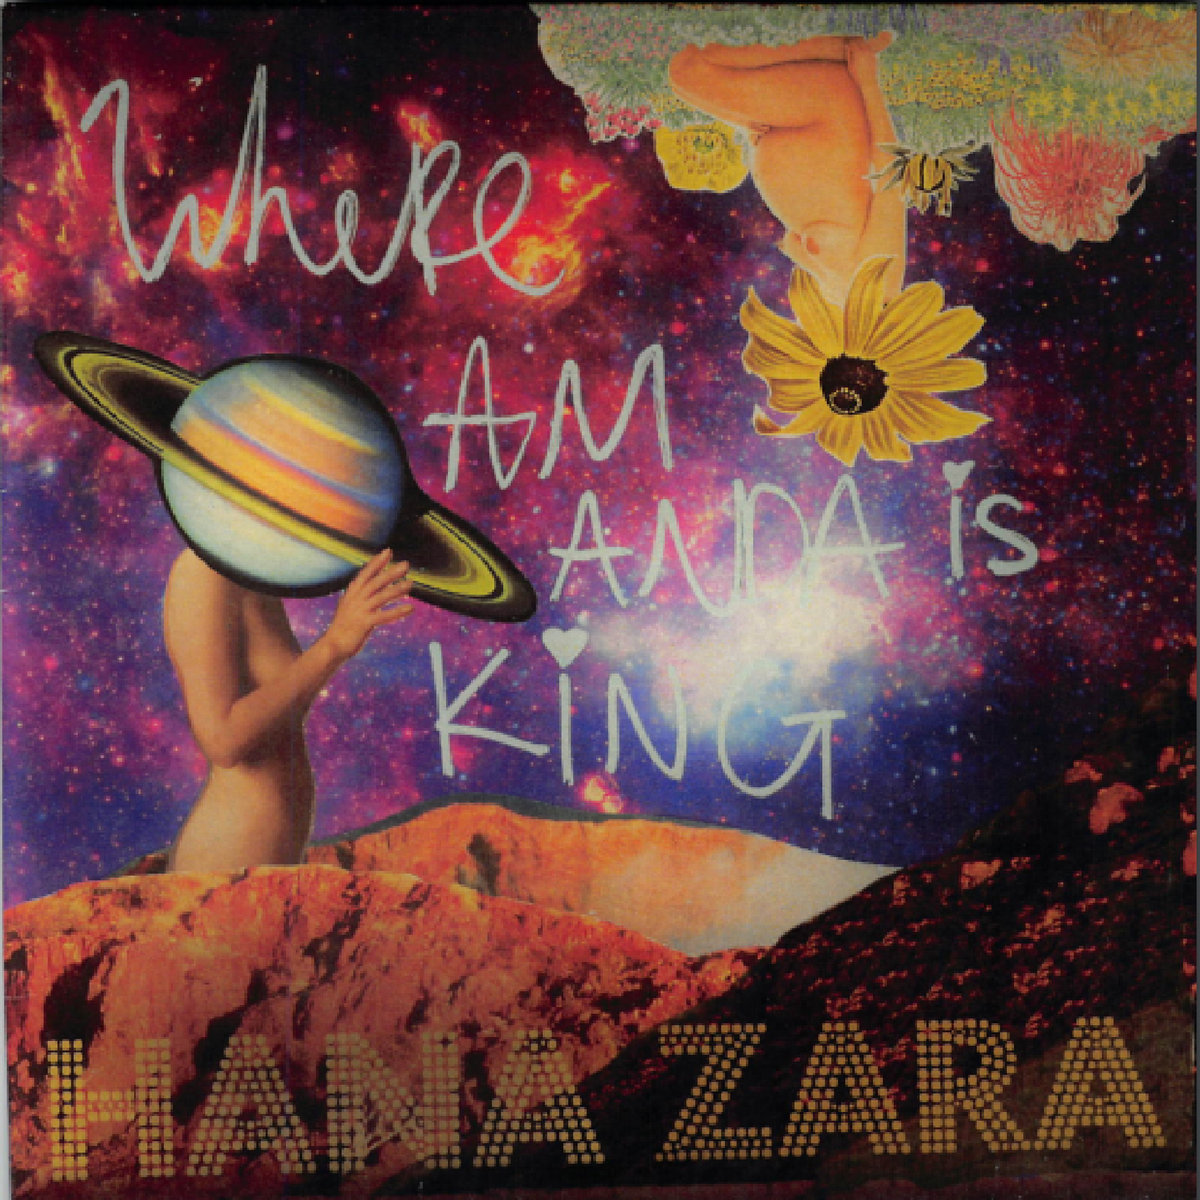 Where amanda is king | hana zara.